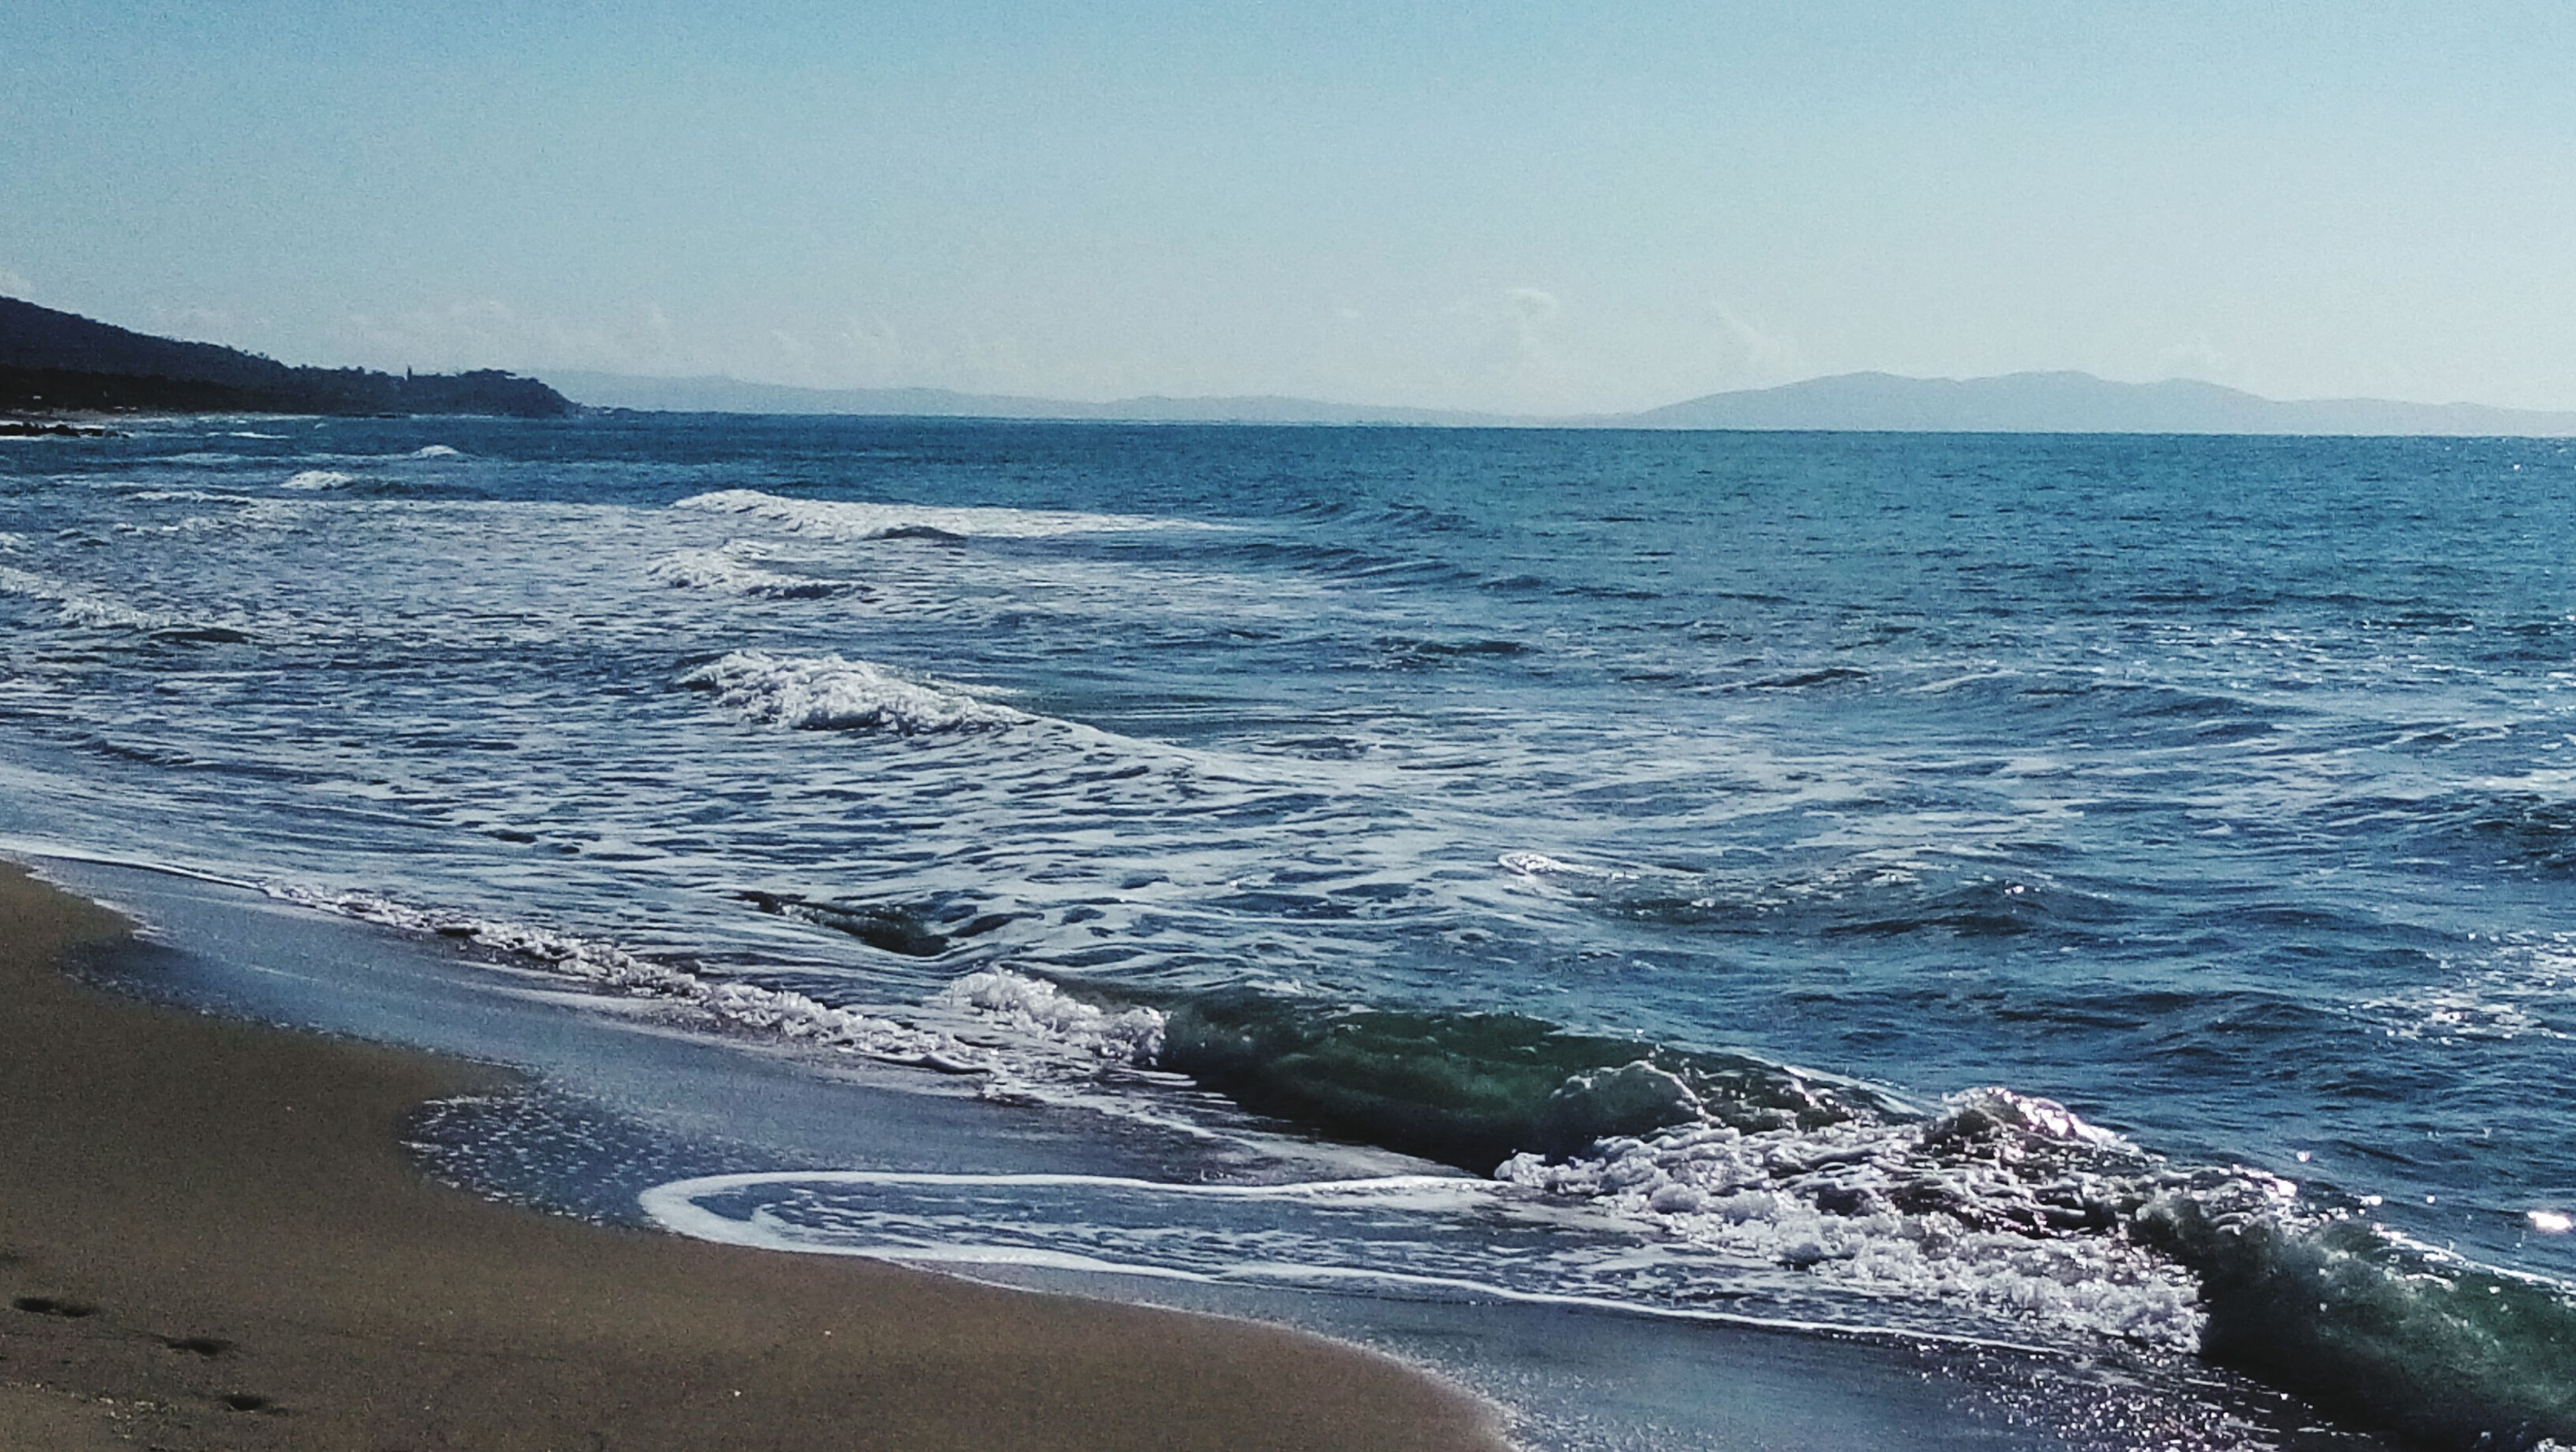 sea, water, beach, clear sky, tranquil scene, scenics, tranquility, beauty in nature, horizon over water, shore, copy space, coastline, nature, blue, sand, idyllic, wave, surf, mountain, rock - object